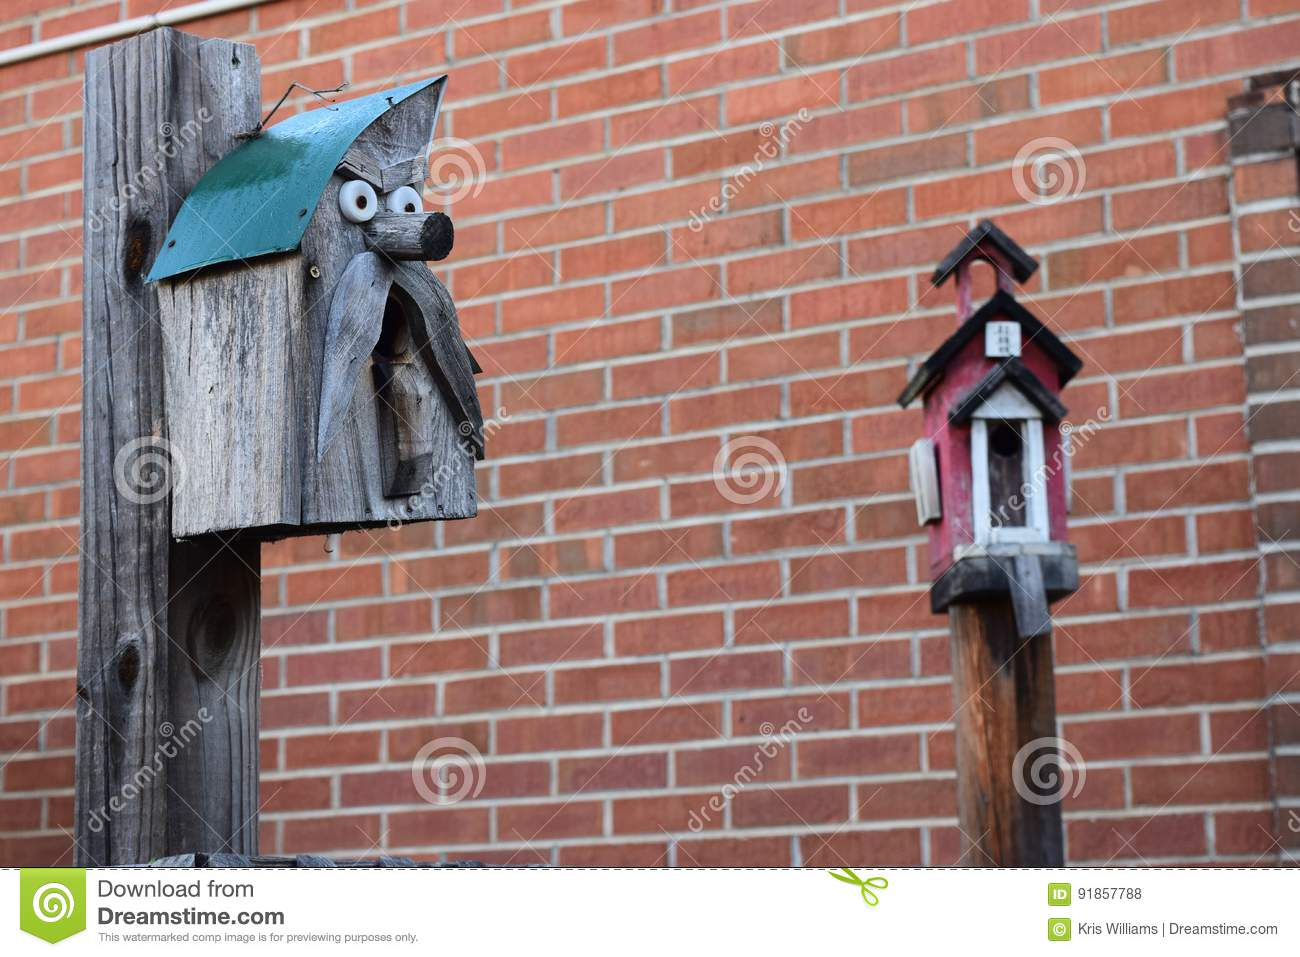 Two birdhouses with a brick wall background